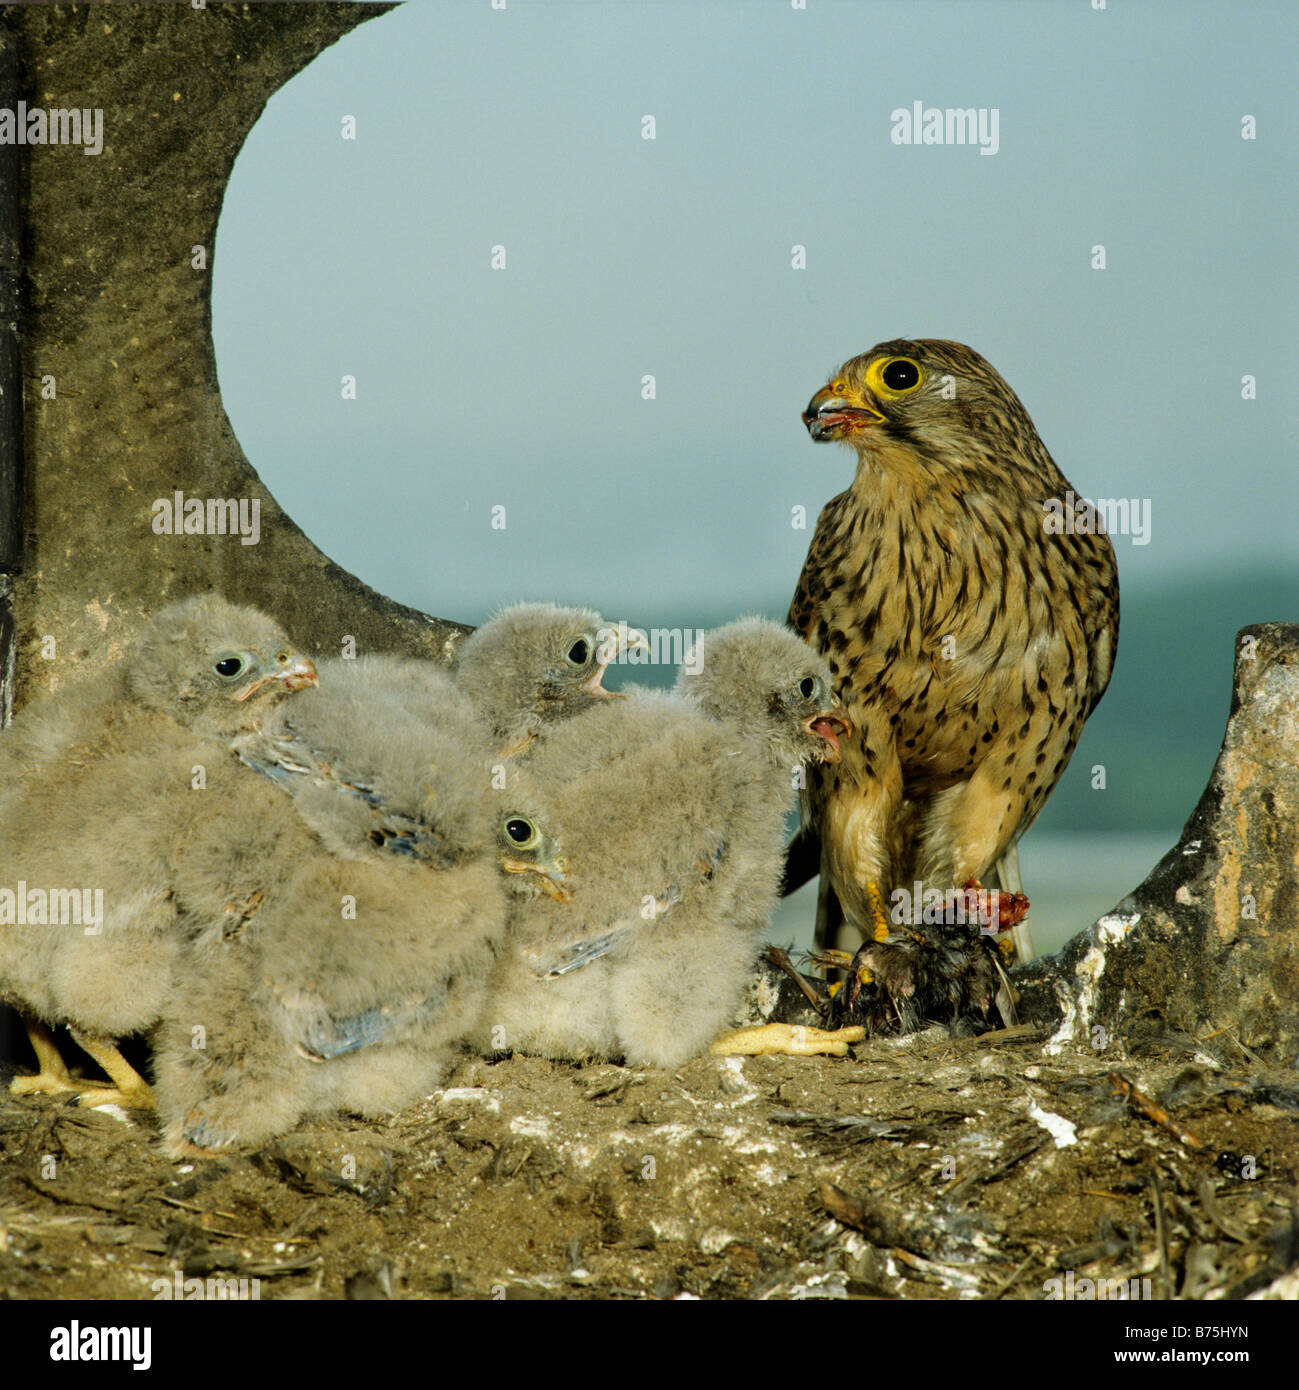 Common Kestrel nest chicks Falco tinnunculus raptor bird of prey aerie European Kestrel Eurasian Kestrel Old World Stock Photo